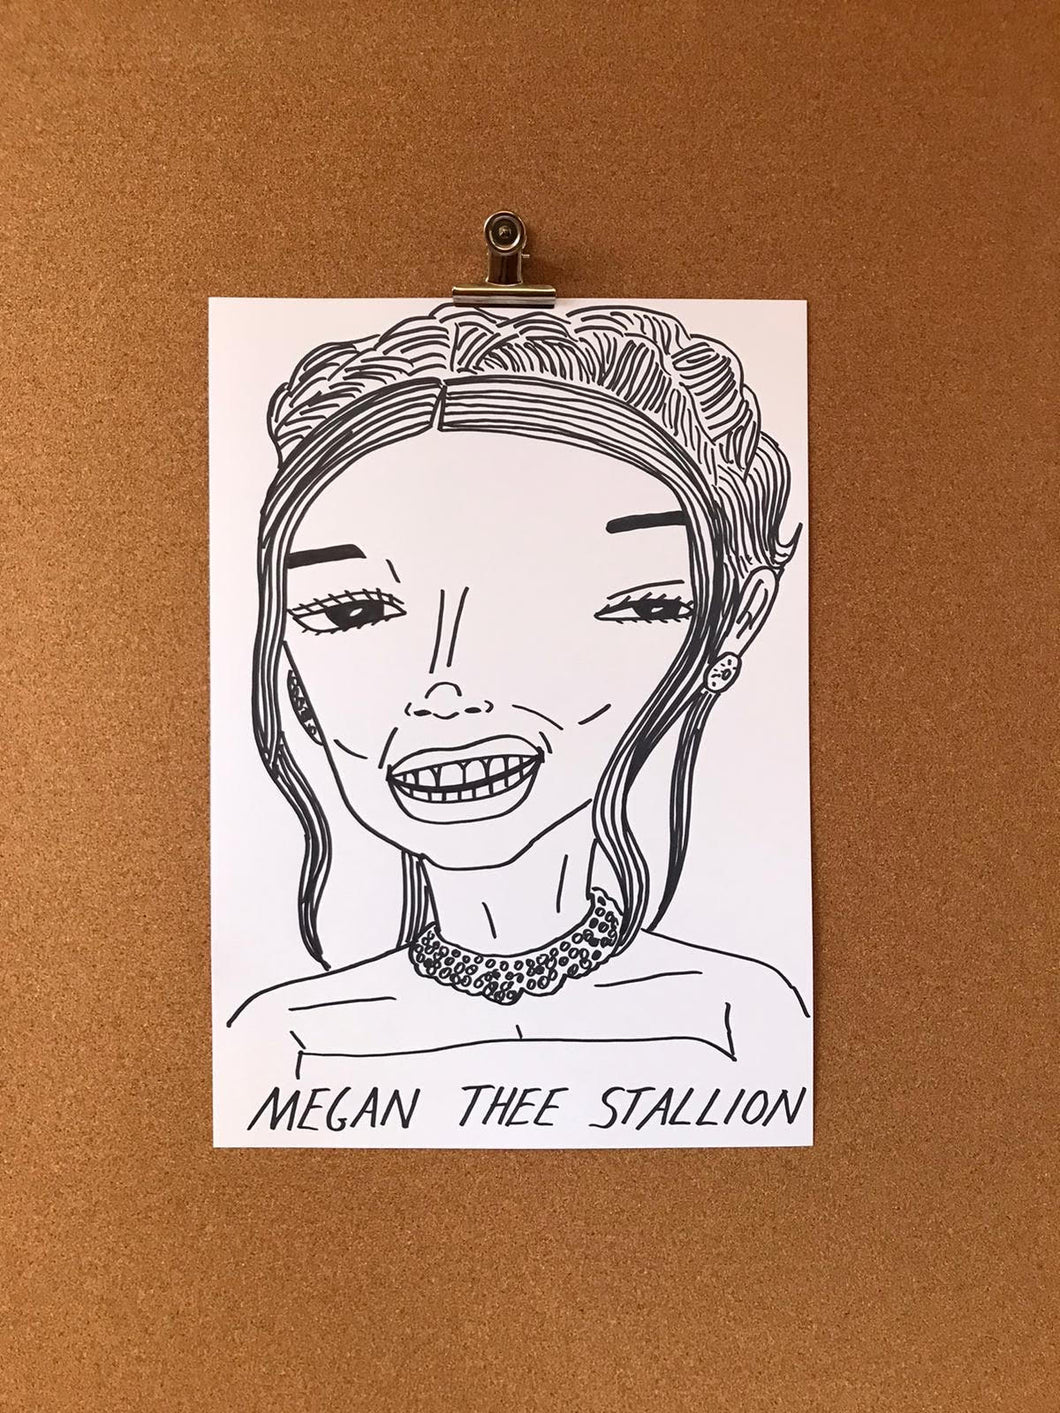 Badly Drawn Celebs - Megan Thee Stallion - Grammys 2021 (Original Artwork - A3)